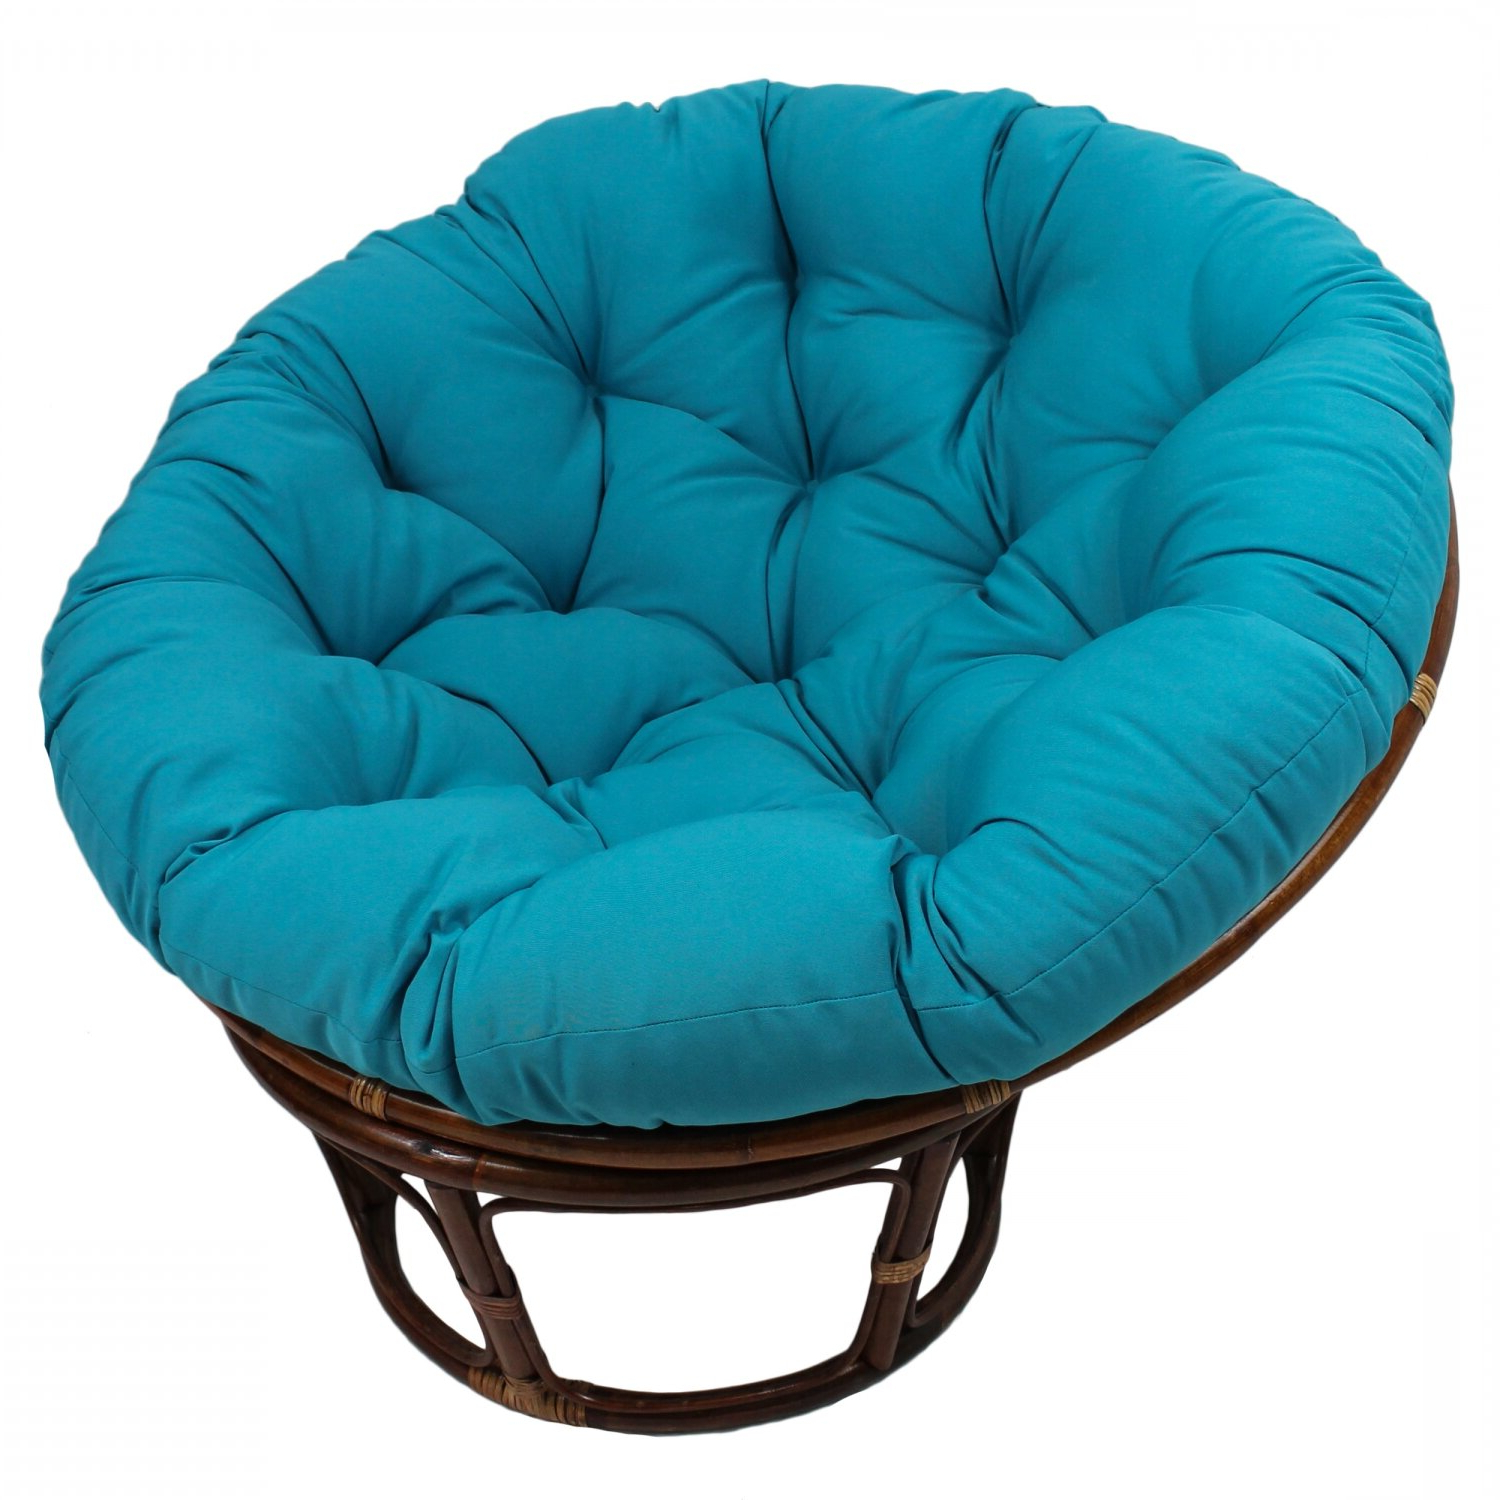 """Renay Papasan Chairs Throughout Current Orndorff 44"""" Tufted Papasan Chair (View 4 of 20)"""